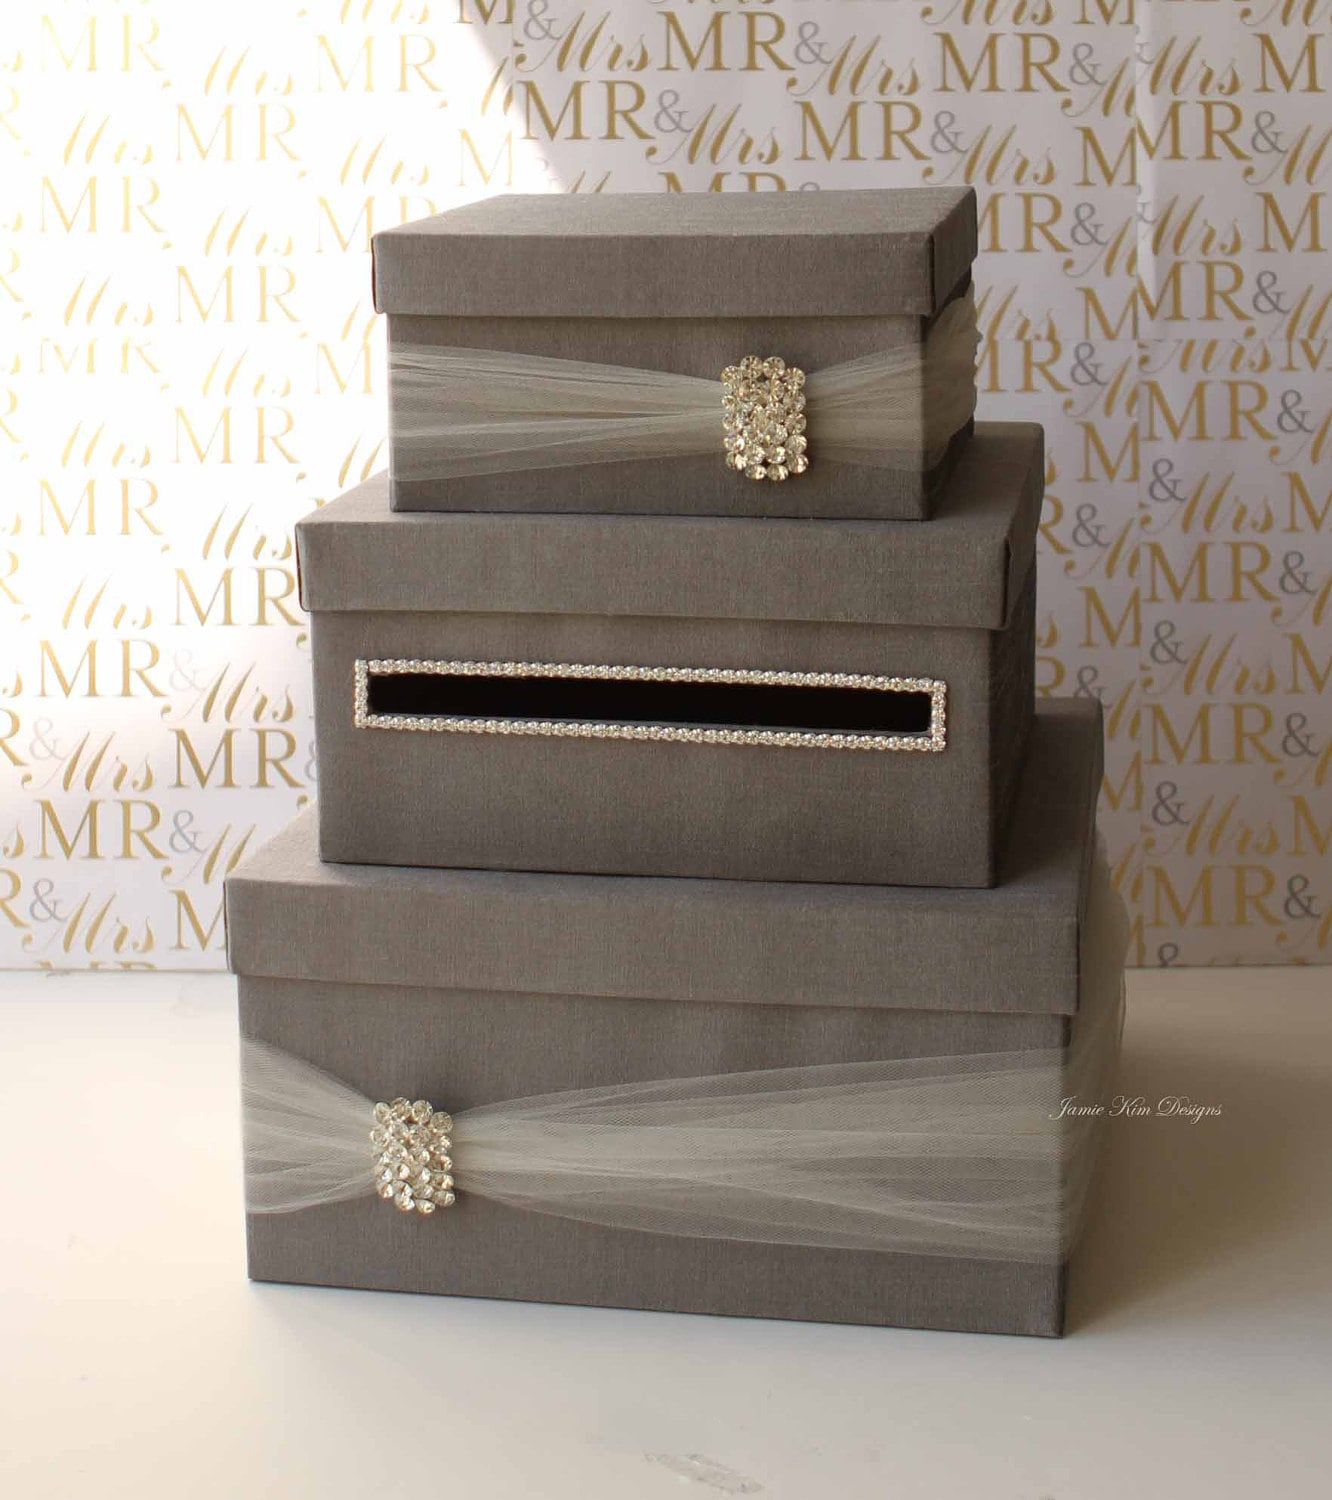 Wedding Money Box: Wedding Card Box Money Box Wedding Gift Card Money Box